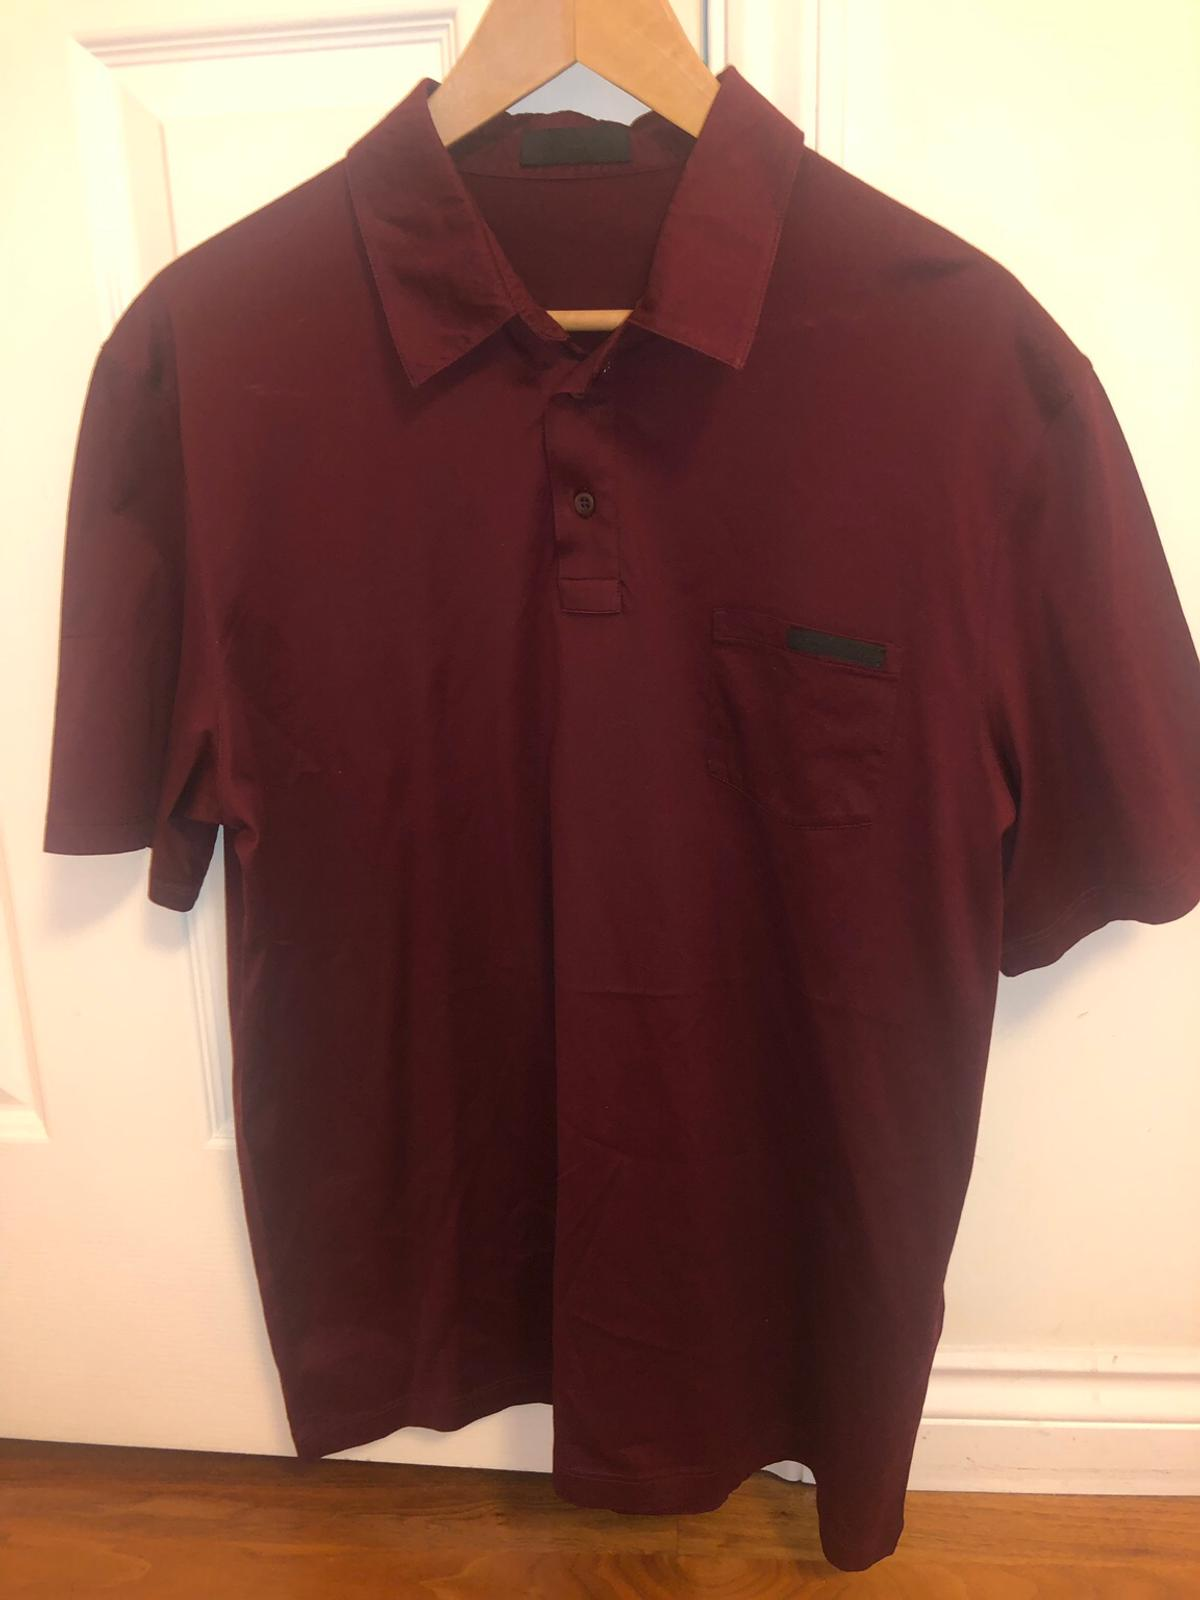 Burgundy Size XL Cash only, no offers